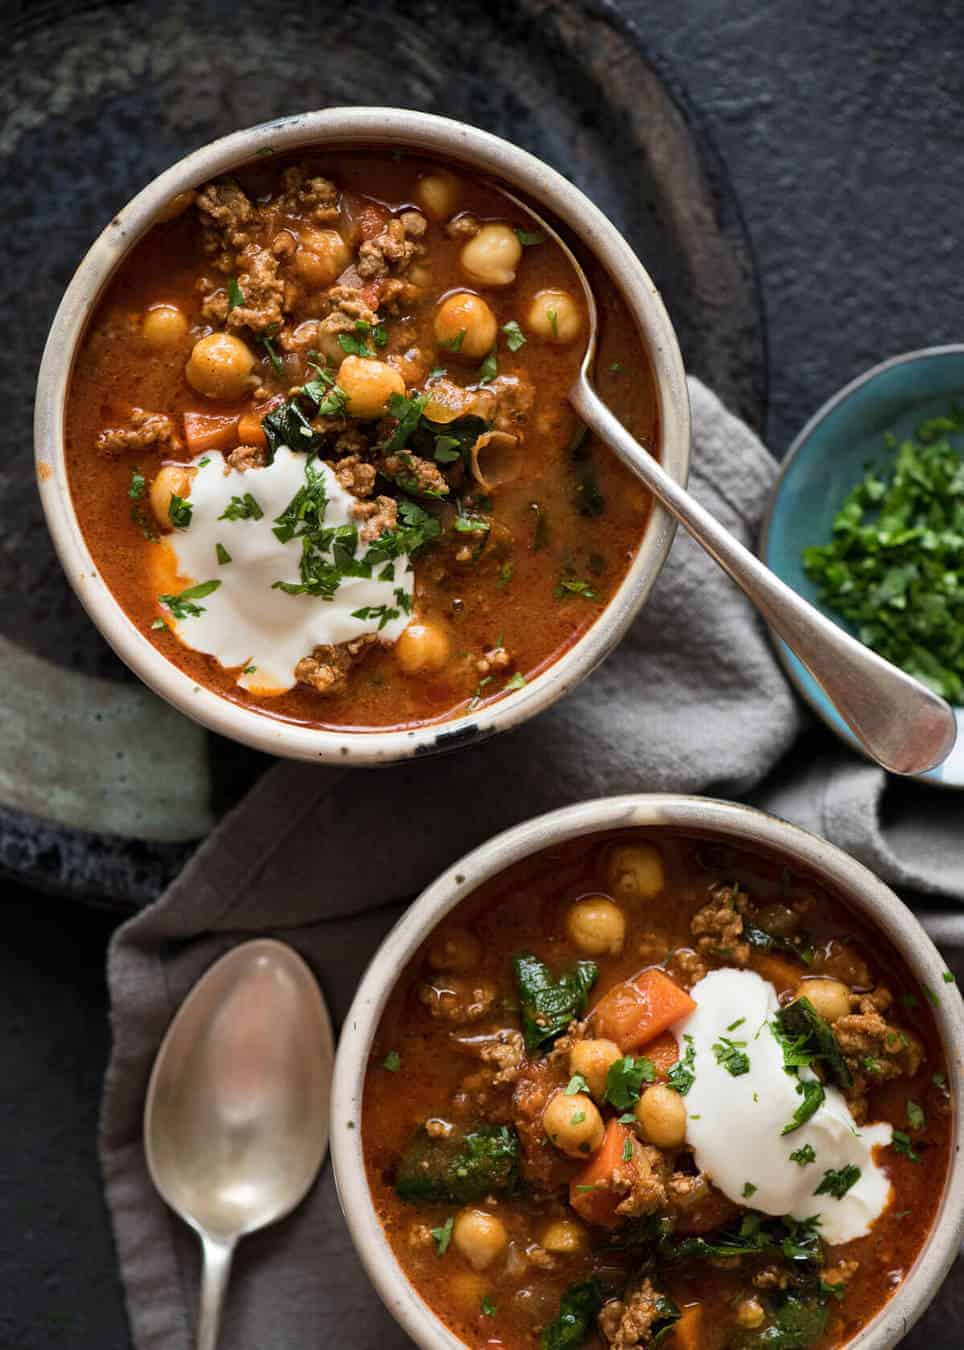 A chickpea soup exploding with flavour! Tastes like Chicken Shawarma in soup form with lamb, quick to make, nutritious and filling. www.recipetineats.com